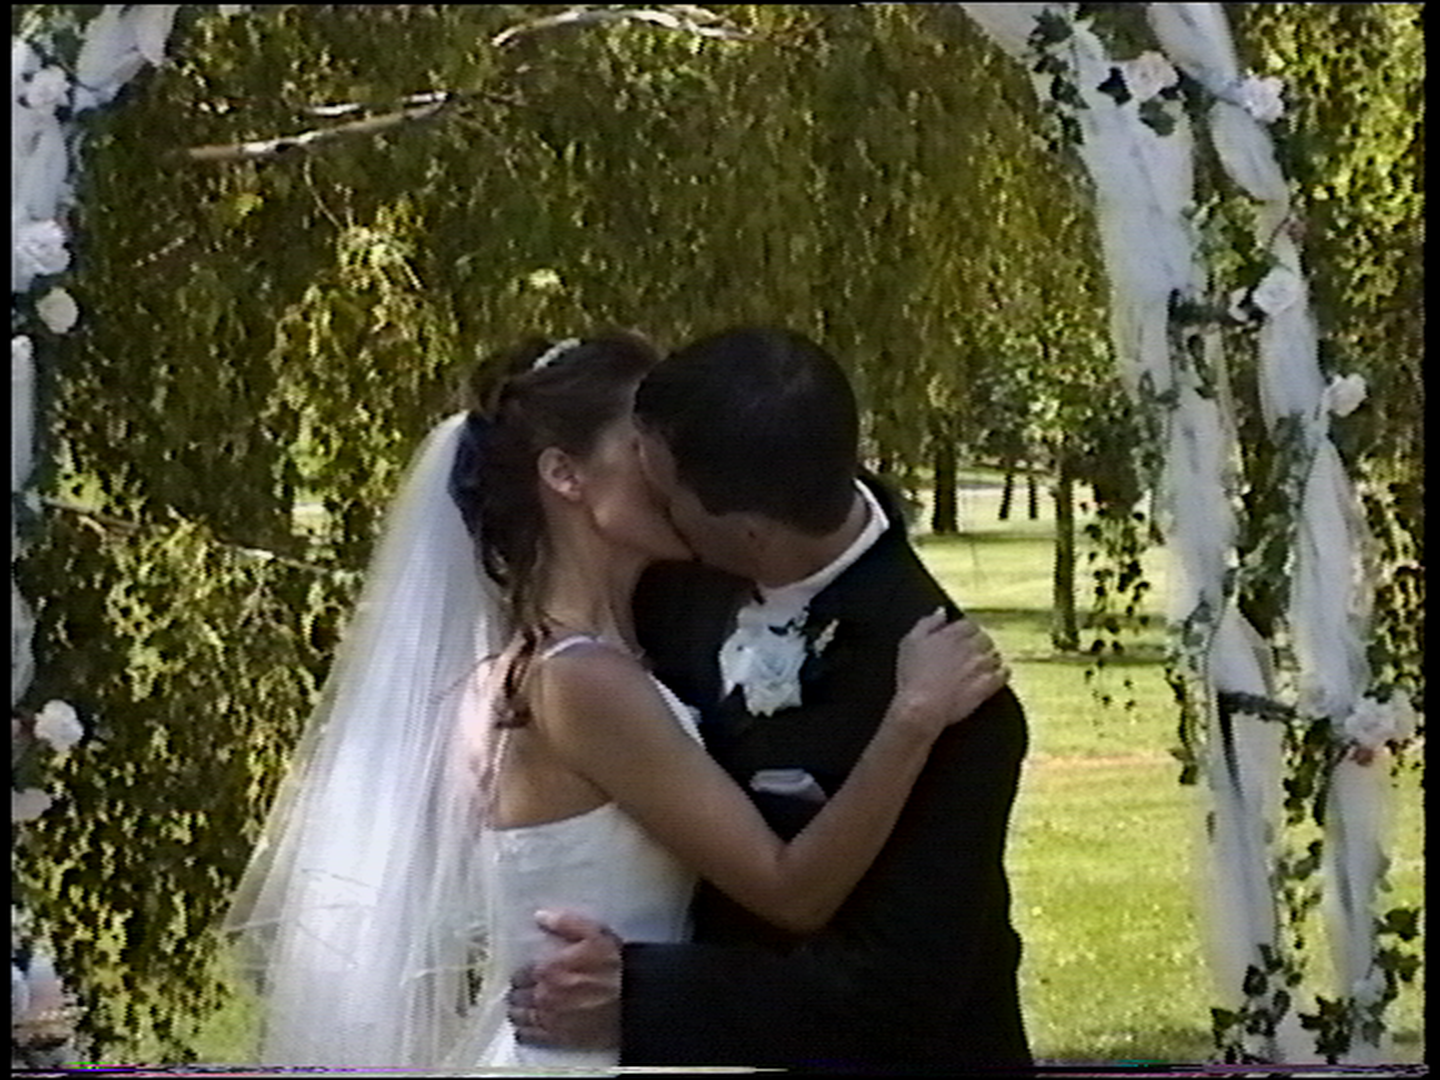 Click image for larger version  Name:Wedding P - 13-30 - NHX-E2 L.png Views:2504 Size:2.04 MB ID:35576